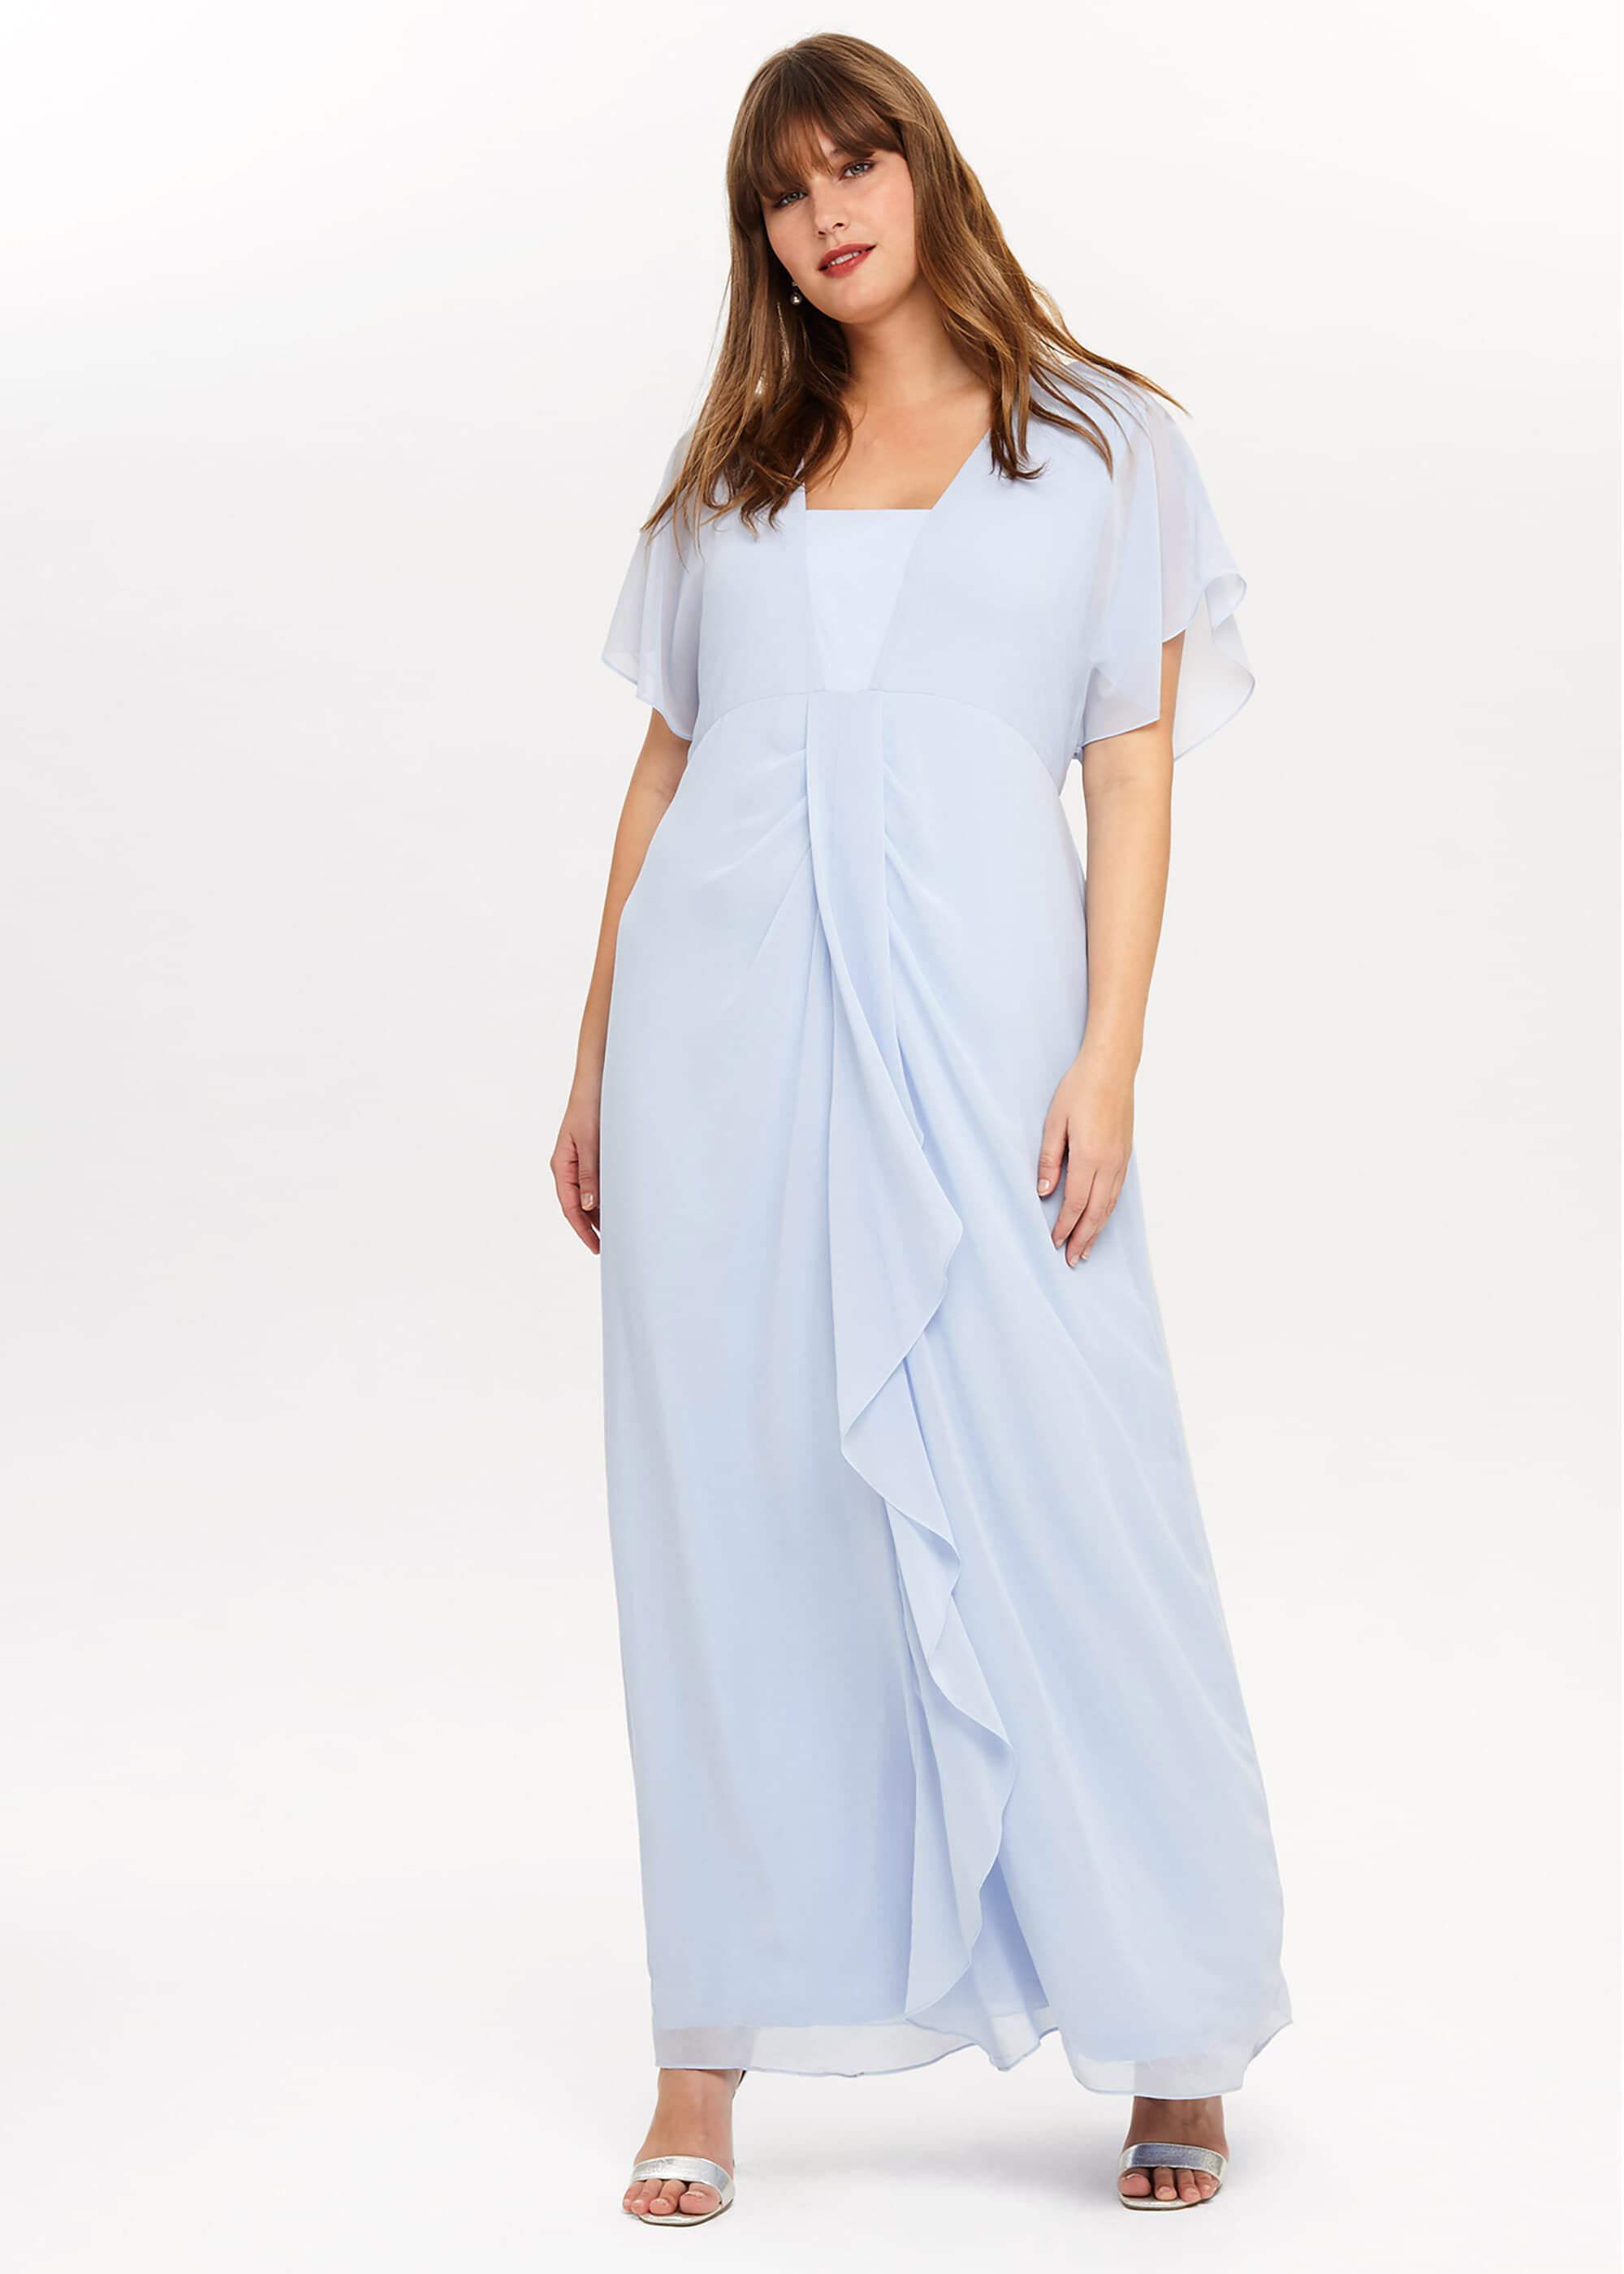 Studio 8 Olympia Maxi Dress, Blue, Maxi, Occasion Dress